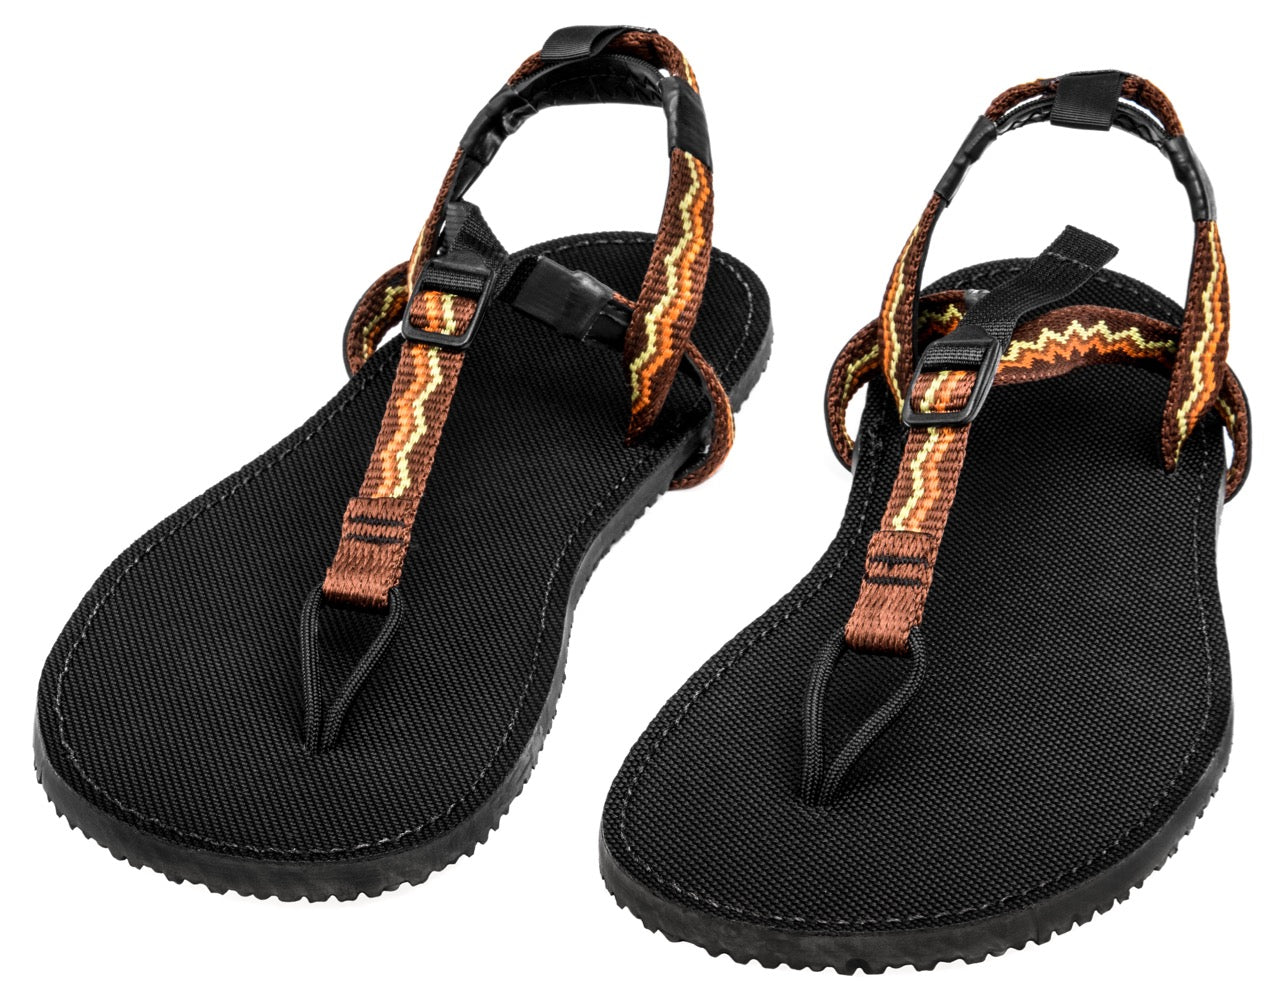 Images Of Sandals photo 16